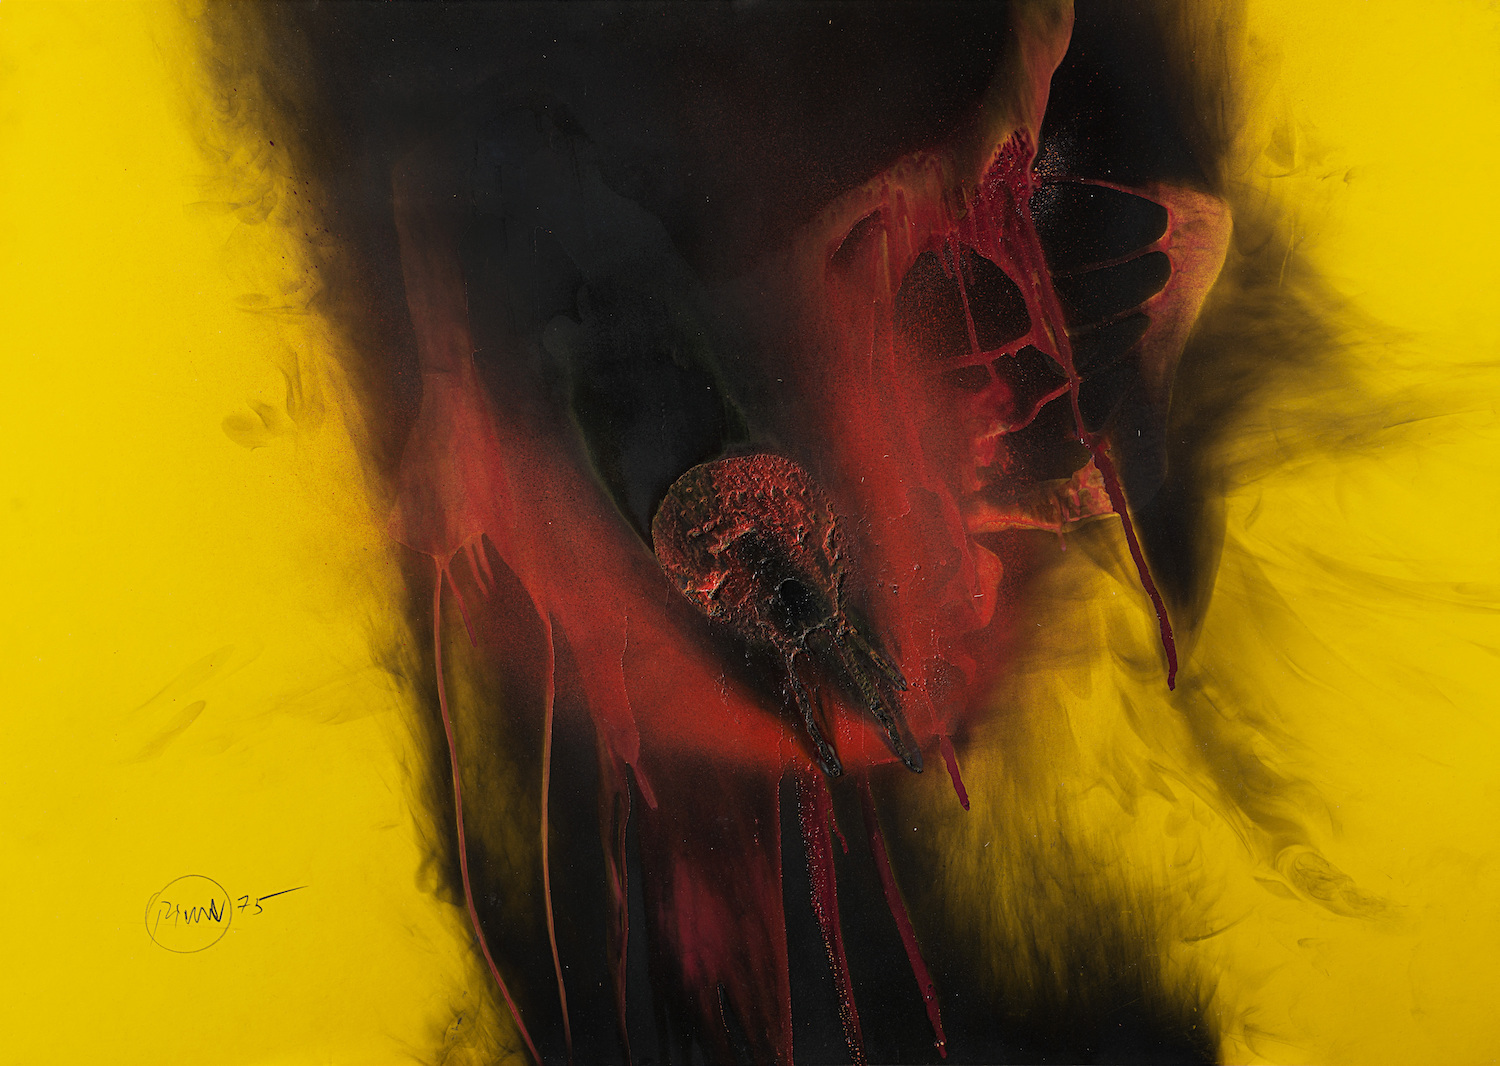 Otto Piene, untitled, 1975, acrylic fire and smoke on cardboard, 70 x 100 cm